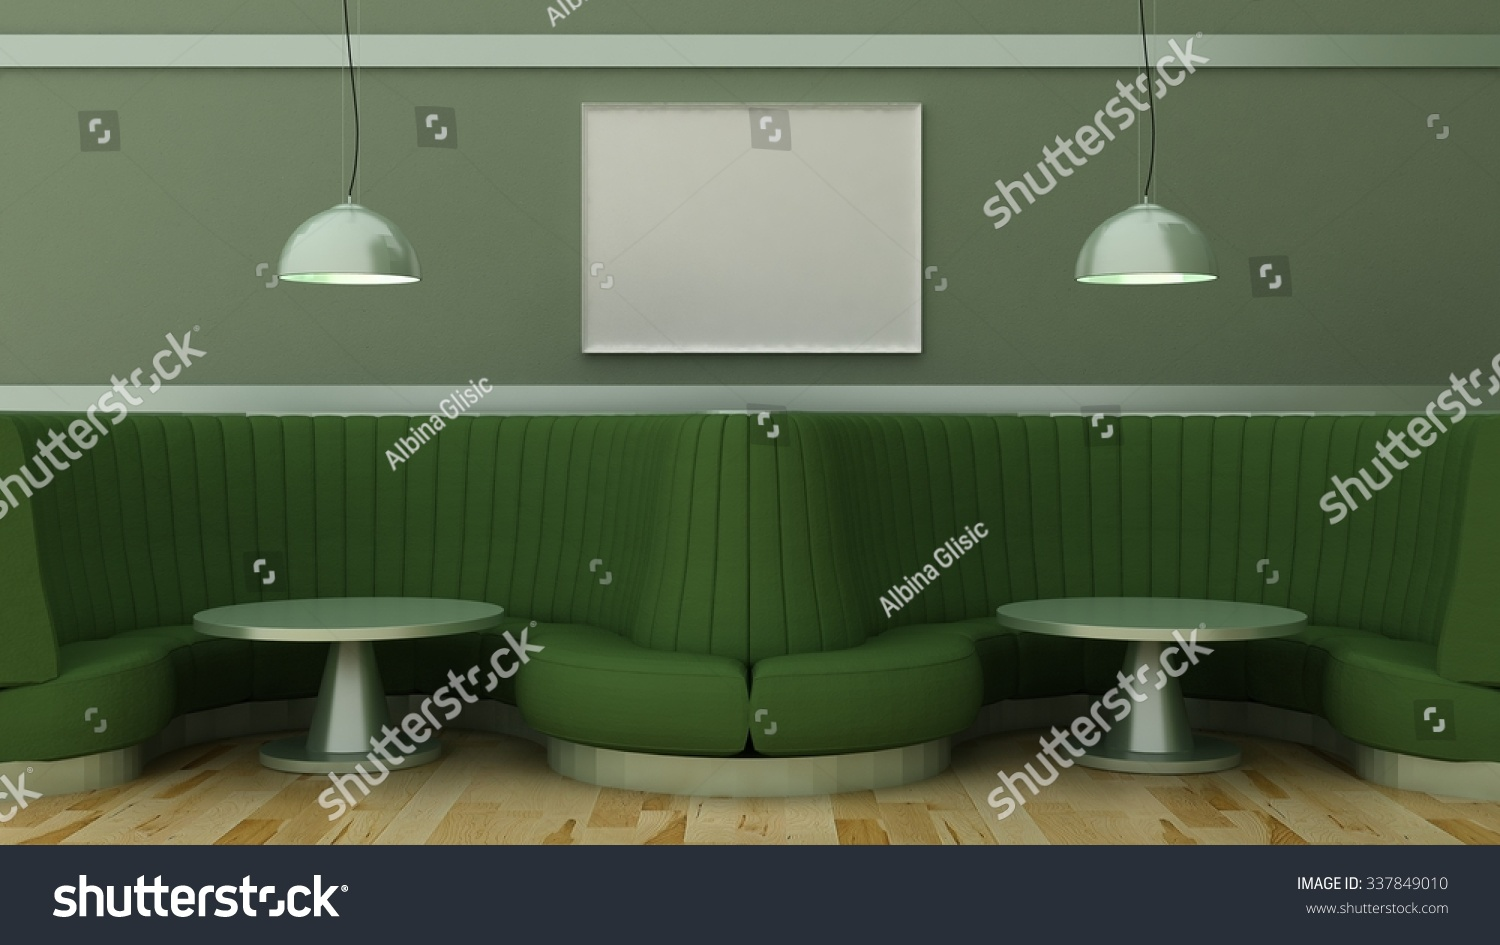 empty picture frames in classic cafe interior background on the